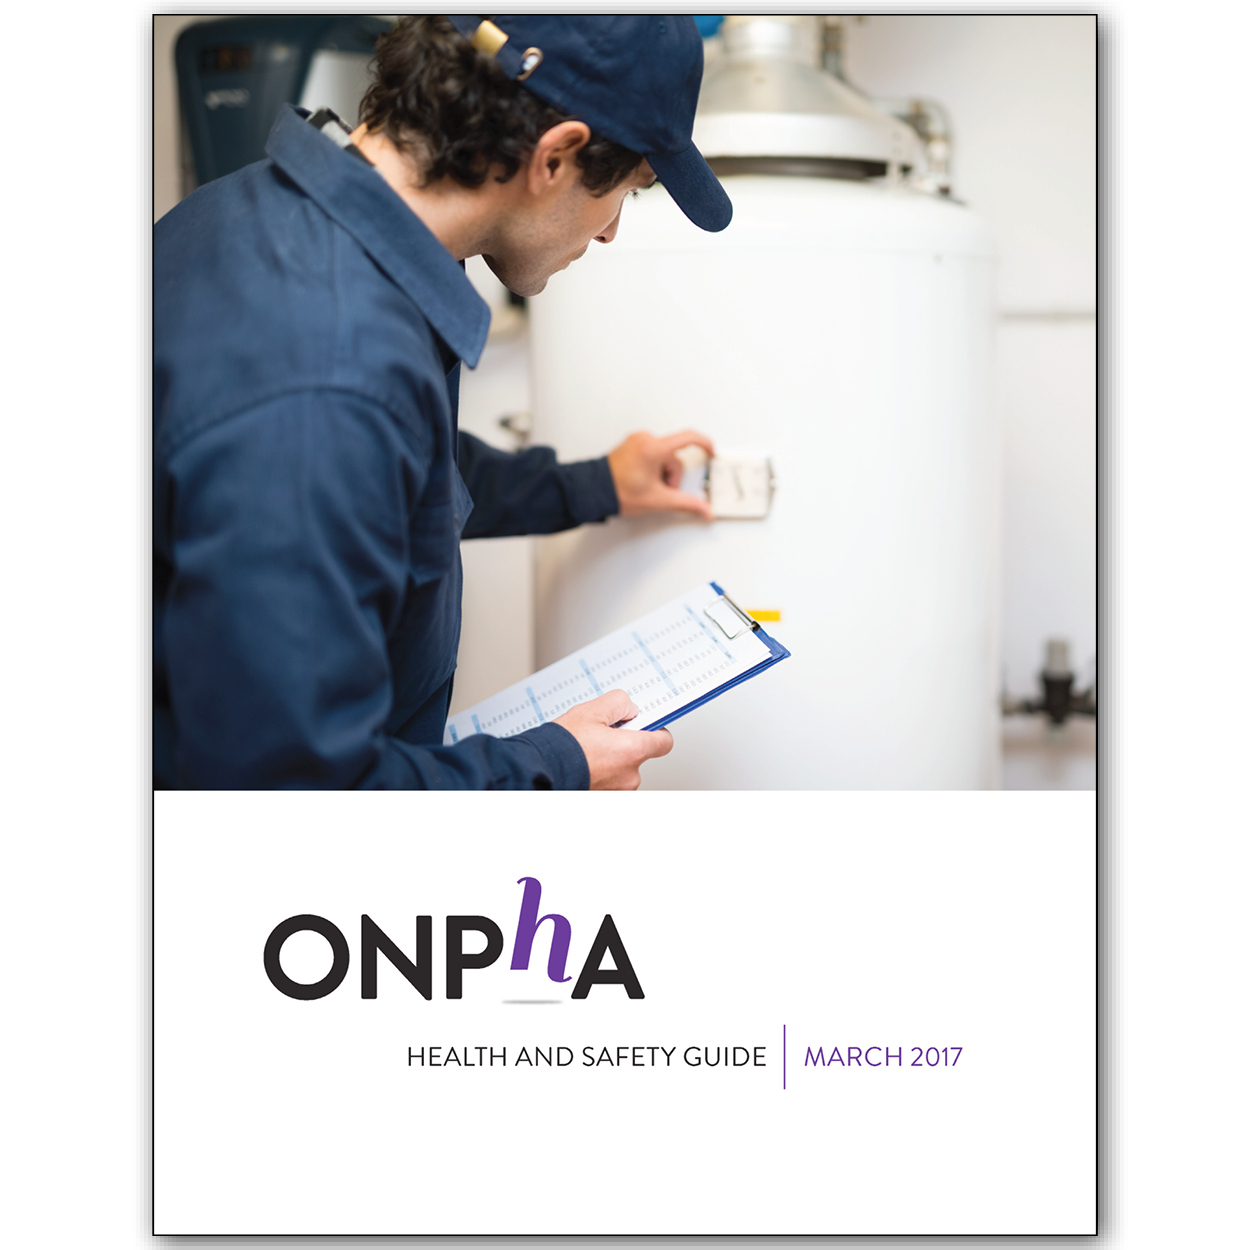 ONPHA Health and Safety Guide: March 2017